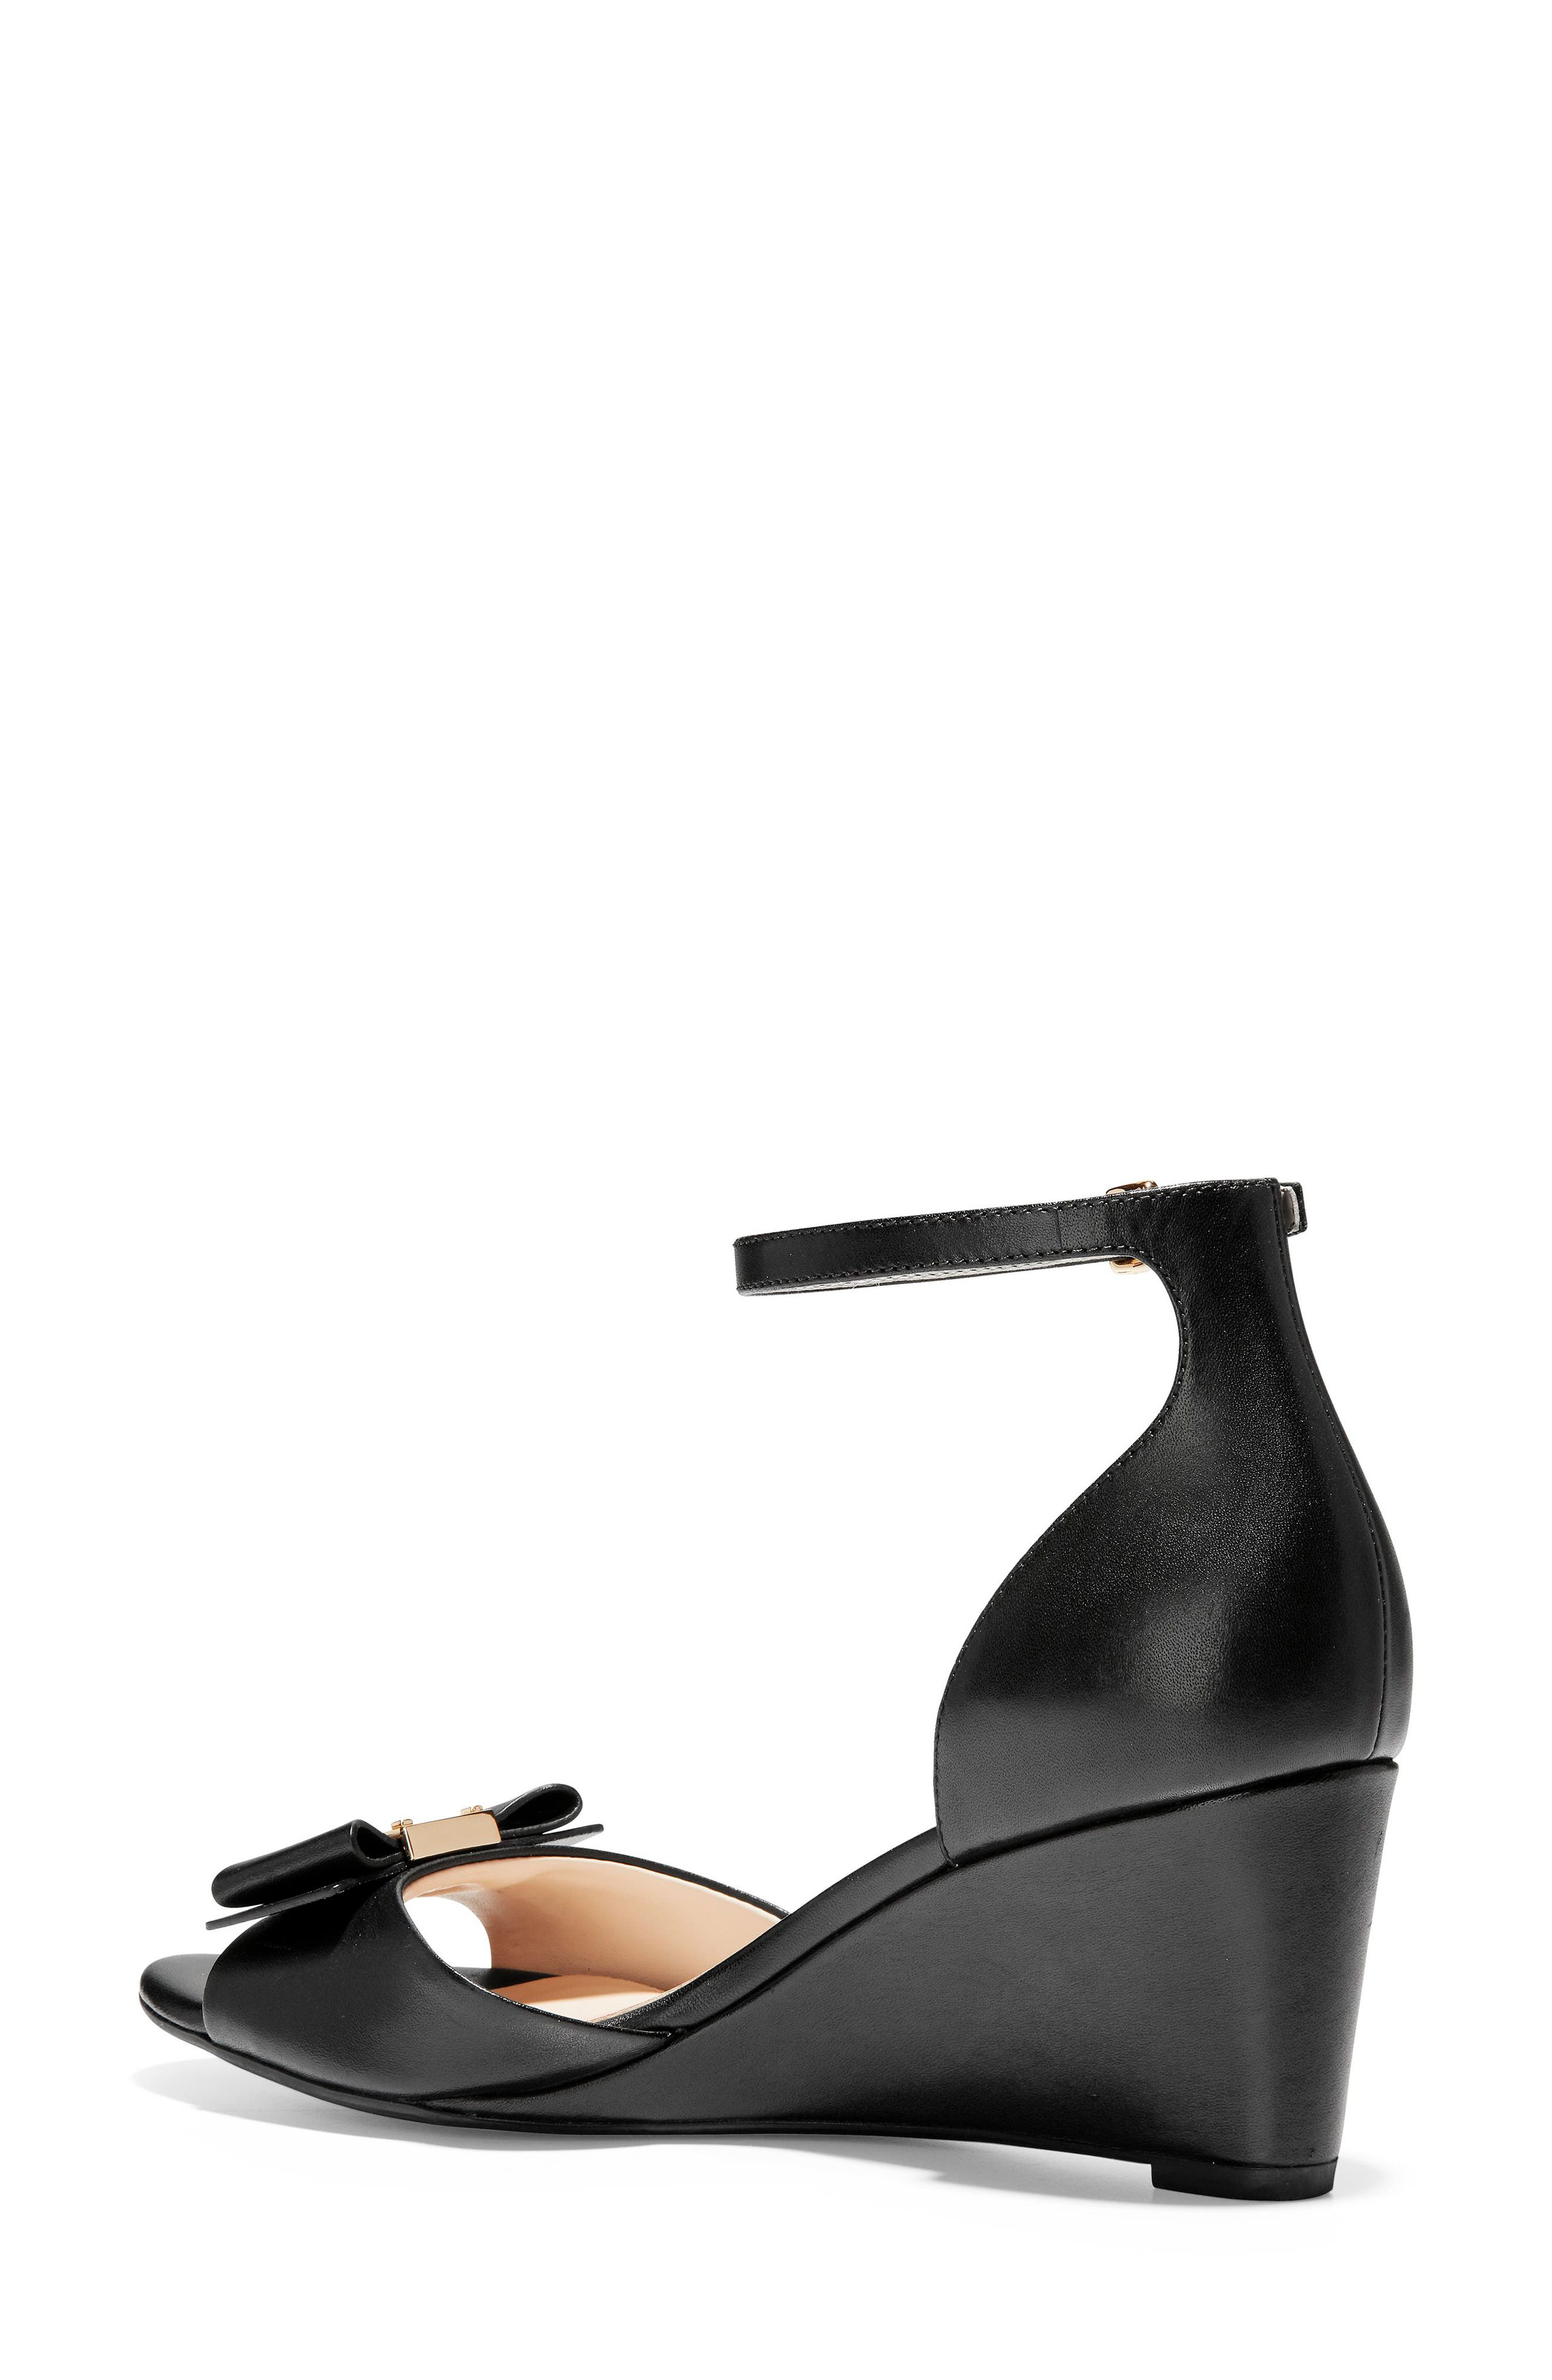 COLE HAAN, Tali Bow Wedge Sandal, Alternate thumbnail 2, color, BLACK LEATHER